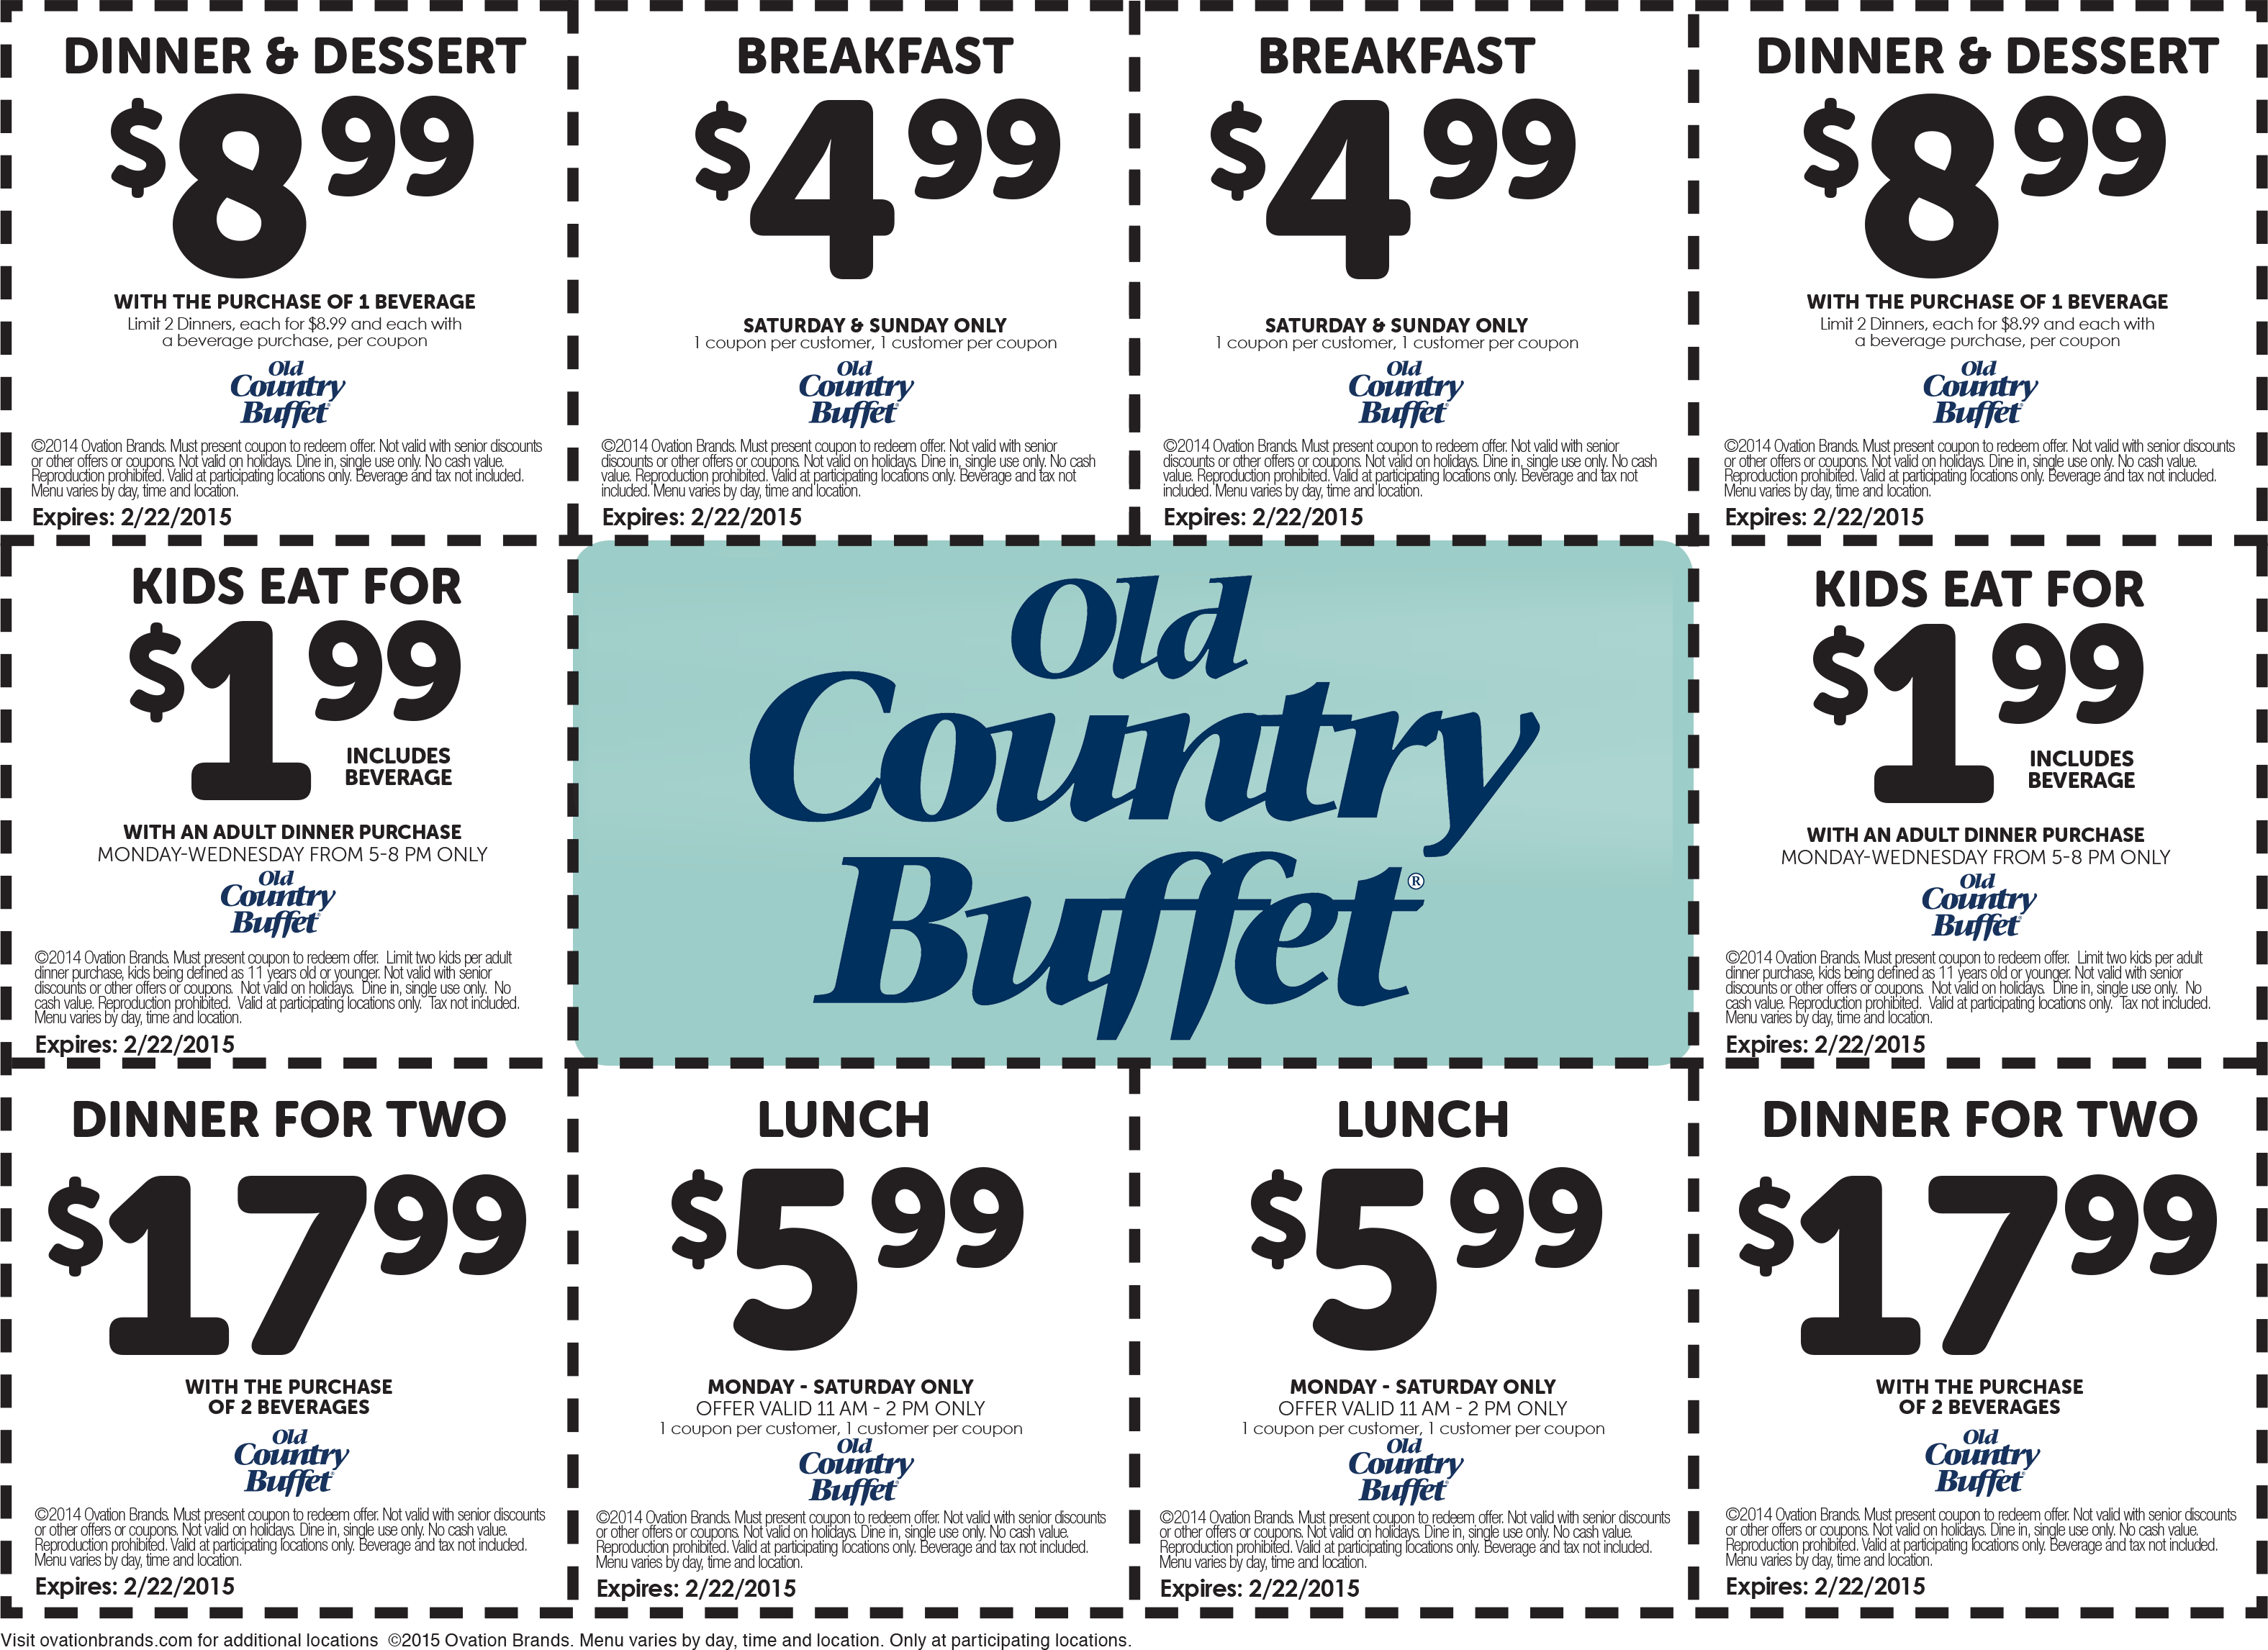 photo regarding The Luxe Buffet Printable Coupon called Godfathers lunch buffet discount coupons / Sunday paper coupon